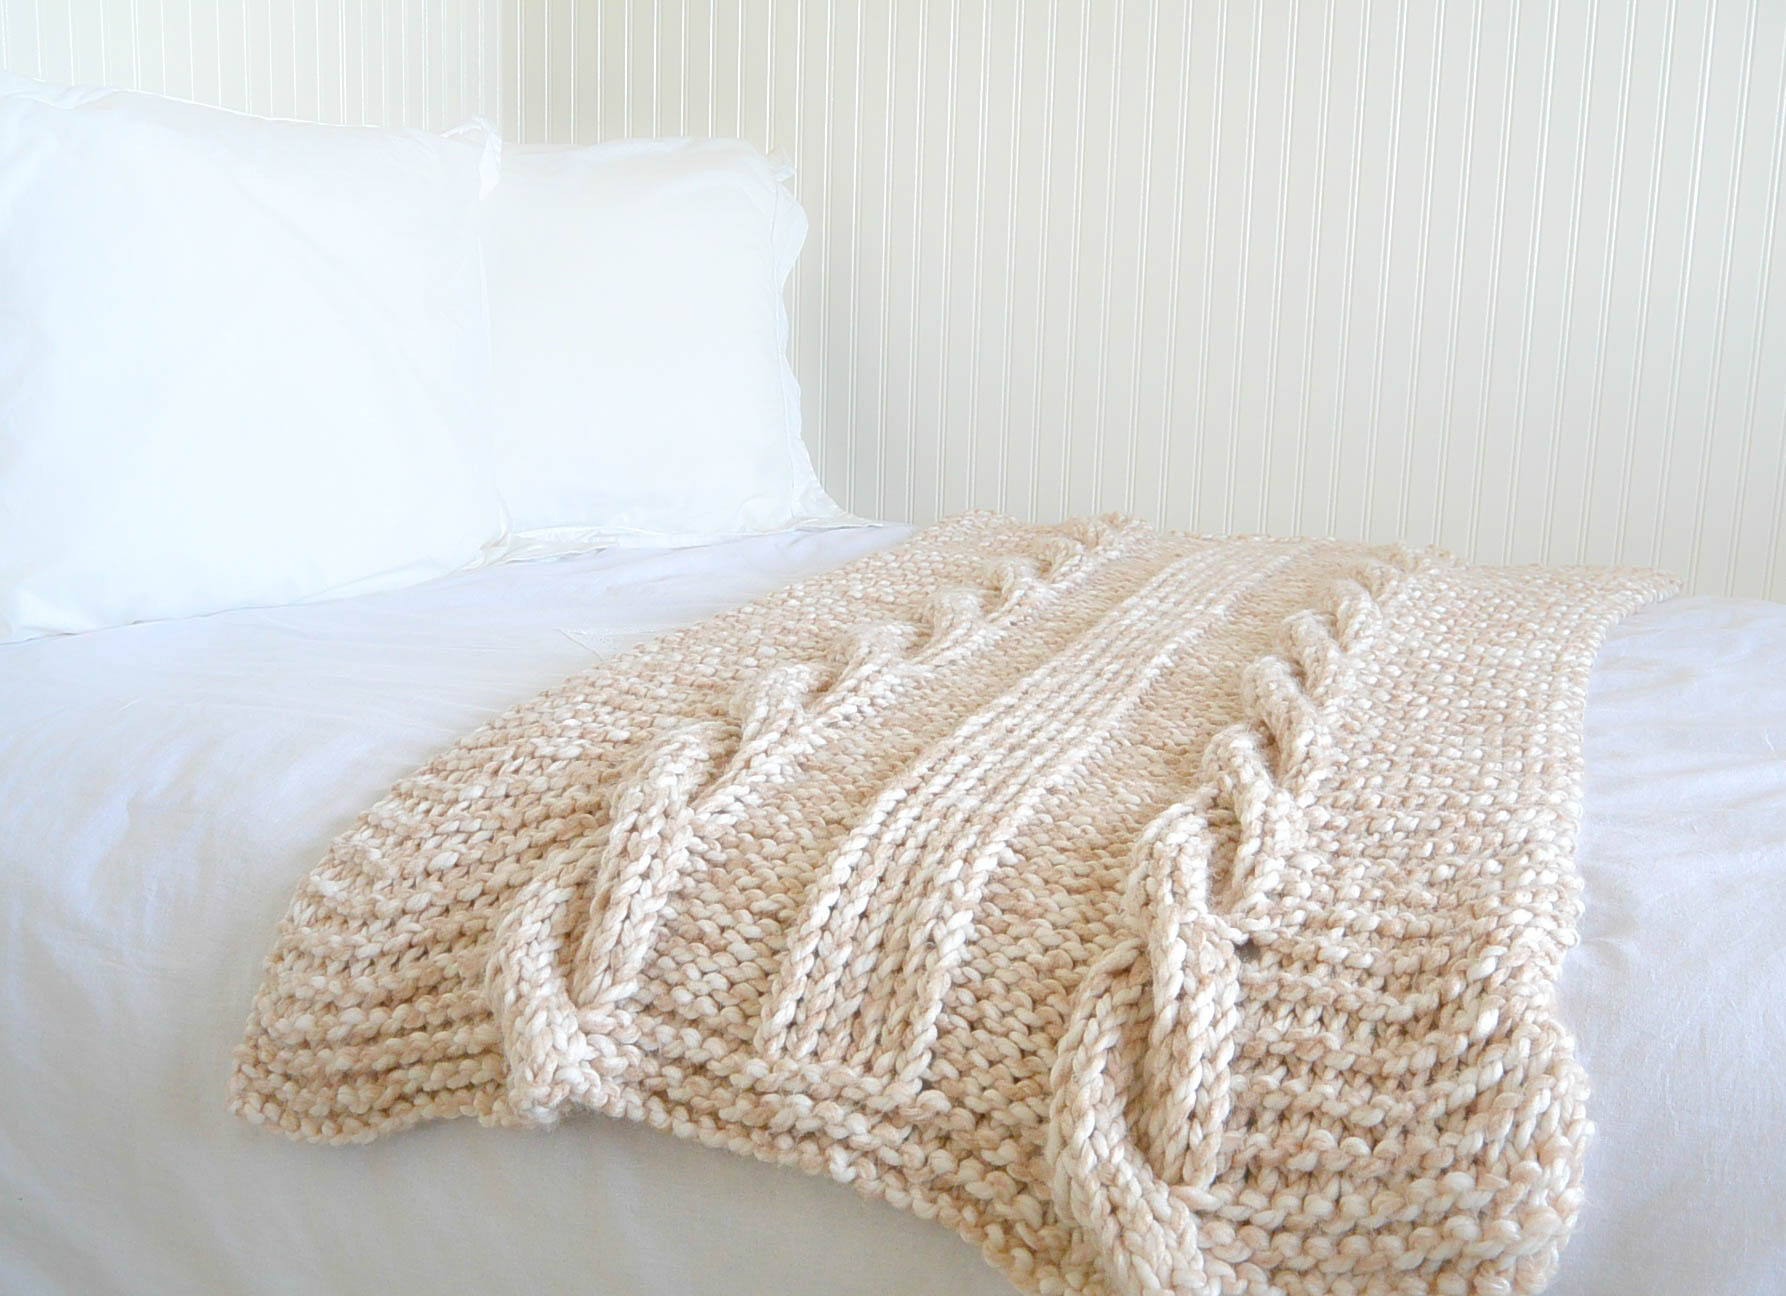 edeb5b385b35 Endless Cables Chunky Knit Throw Pattern – Mama In A Stitch